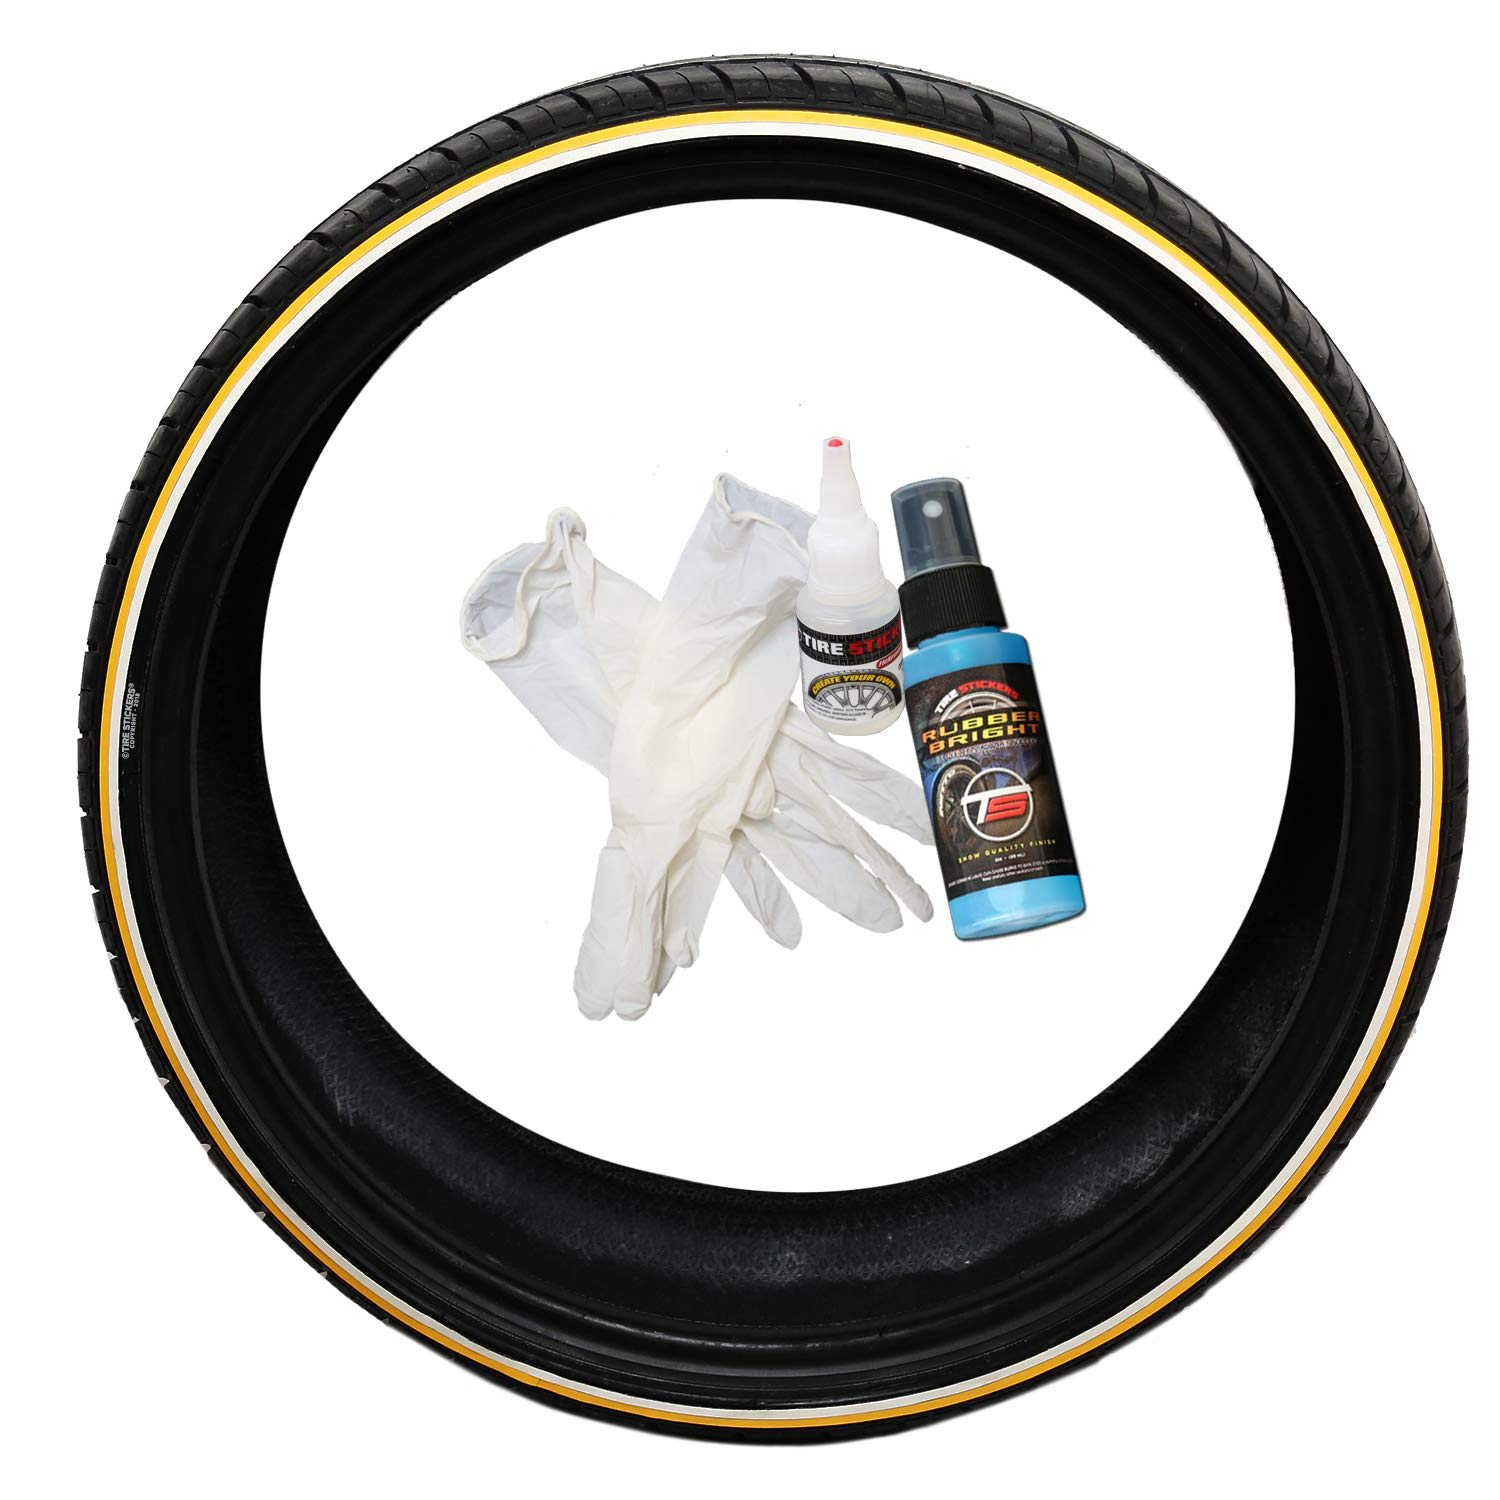 Tire stickers gold line white line tire add on rubber stripe kit vogue style diy application to any tire with glue included custom sizing thickness